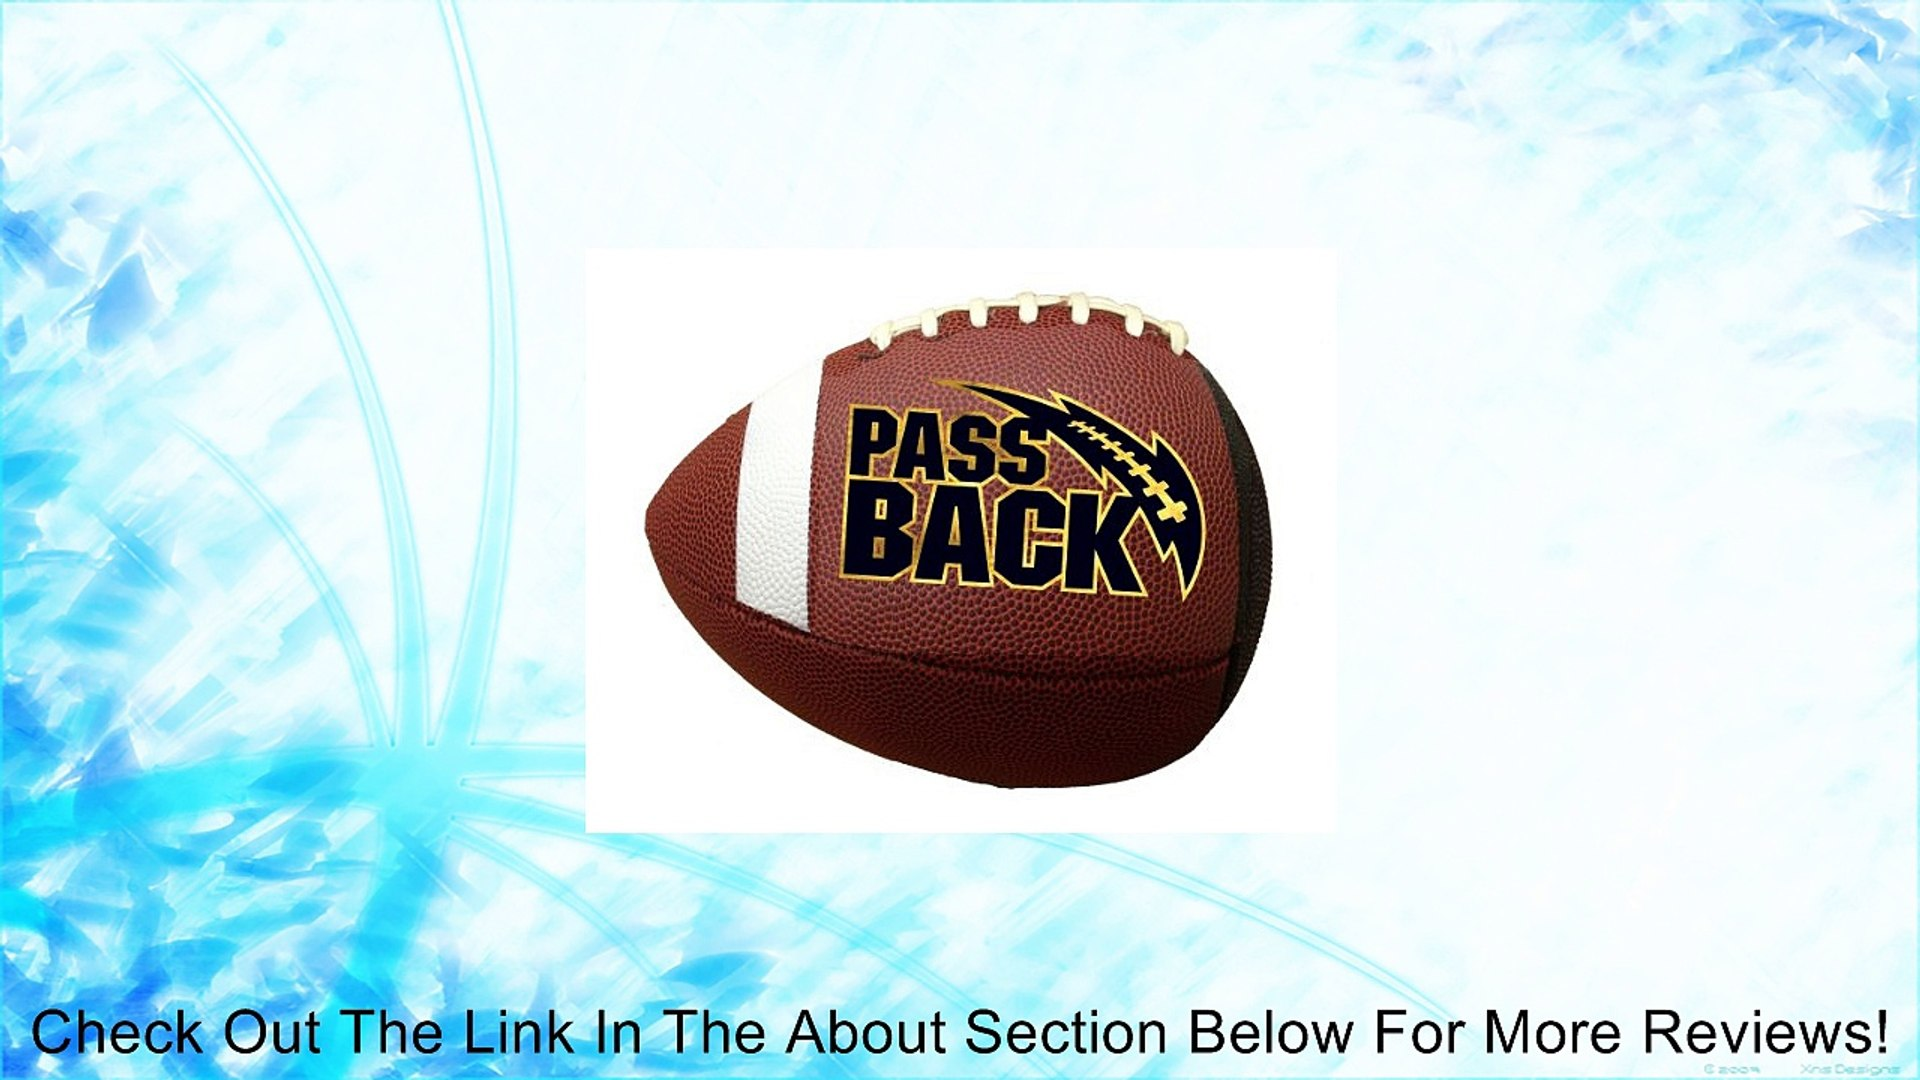 Passback Football - Junior Size (13 and Under) Composite Review